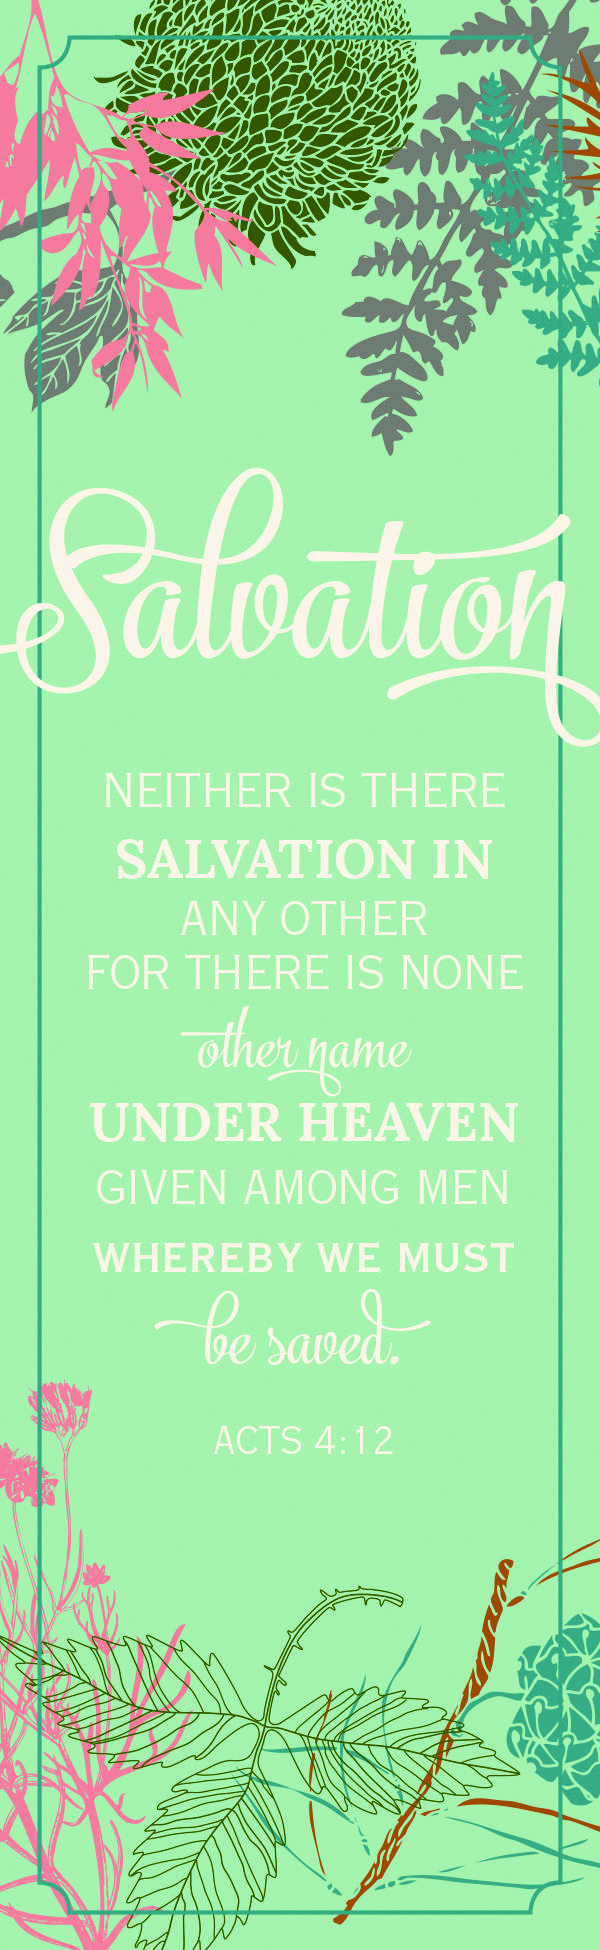 """""""Neither is there salvation in any other: for there is none other name under Heaven given among men, whereby we must be saved."""" Acts 4:12 (KJV)"""